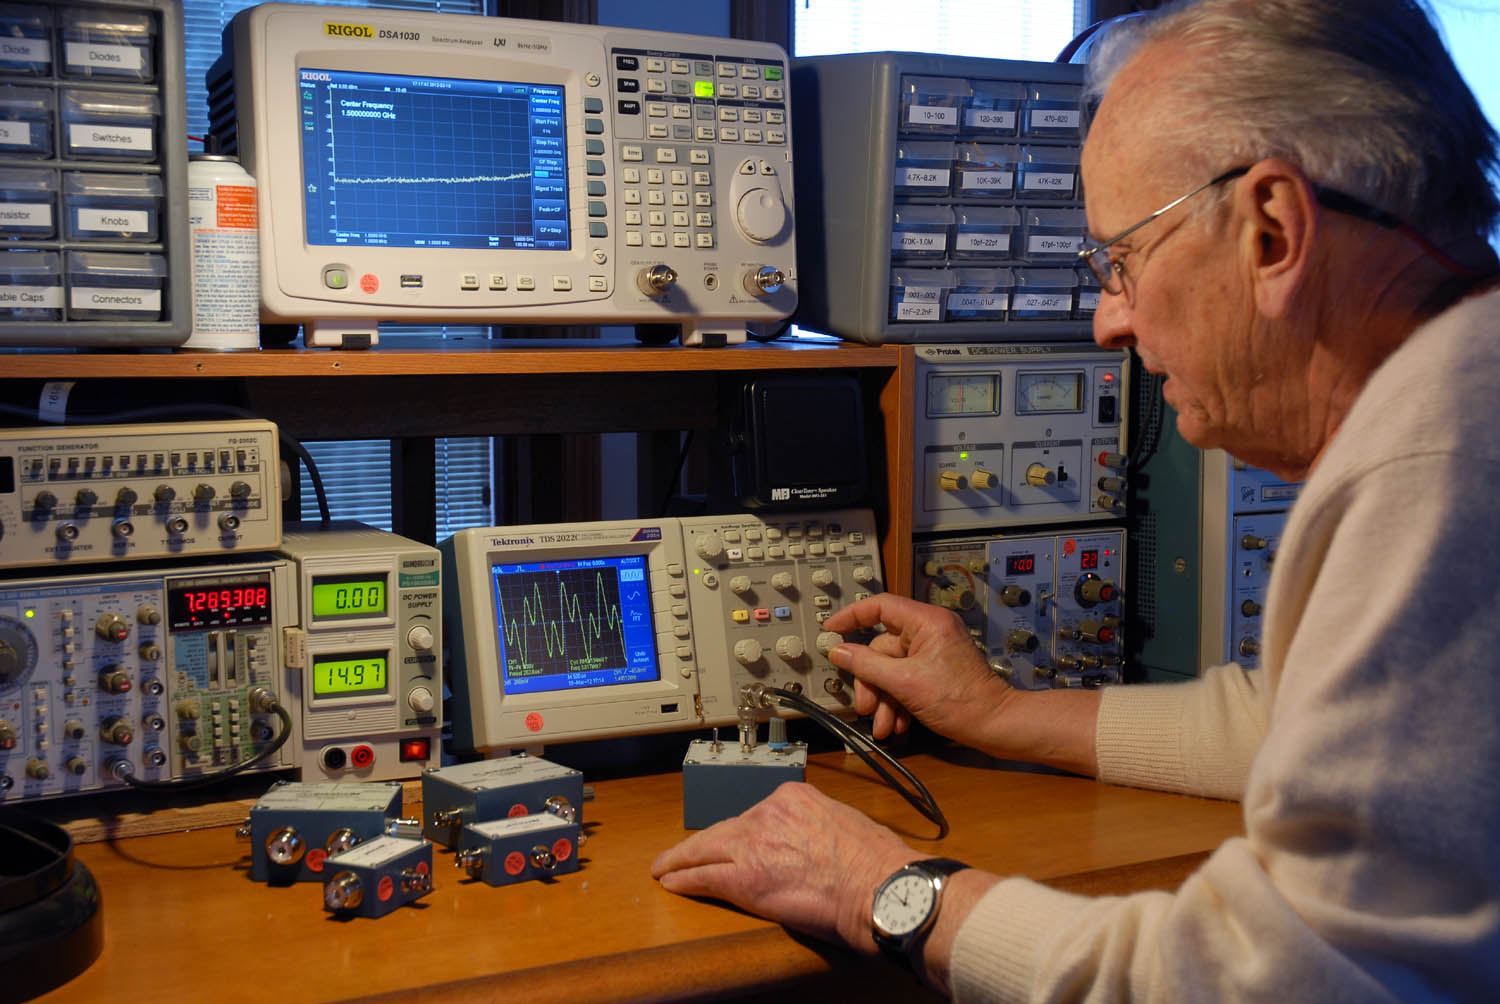 Electronic Lab Instruments : Calibration preciserf